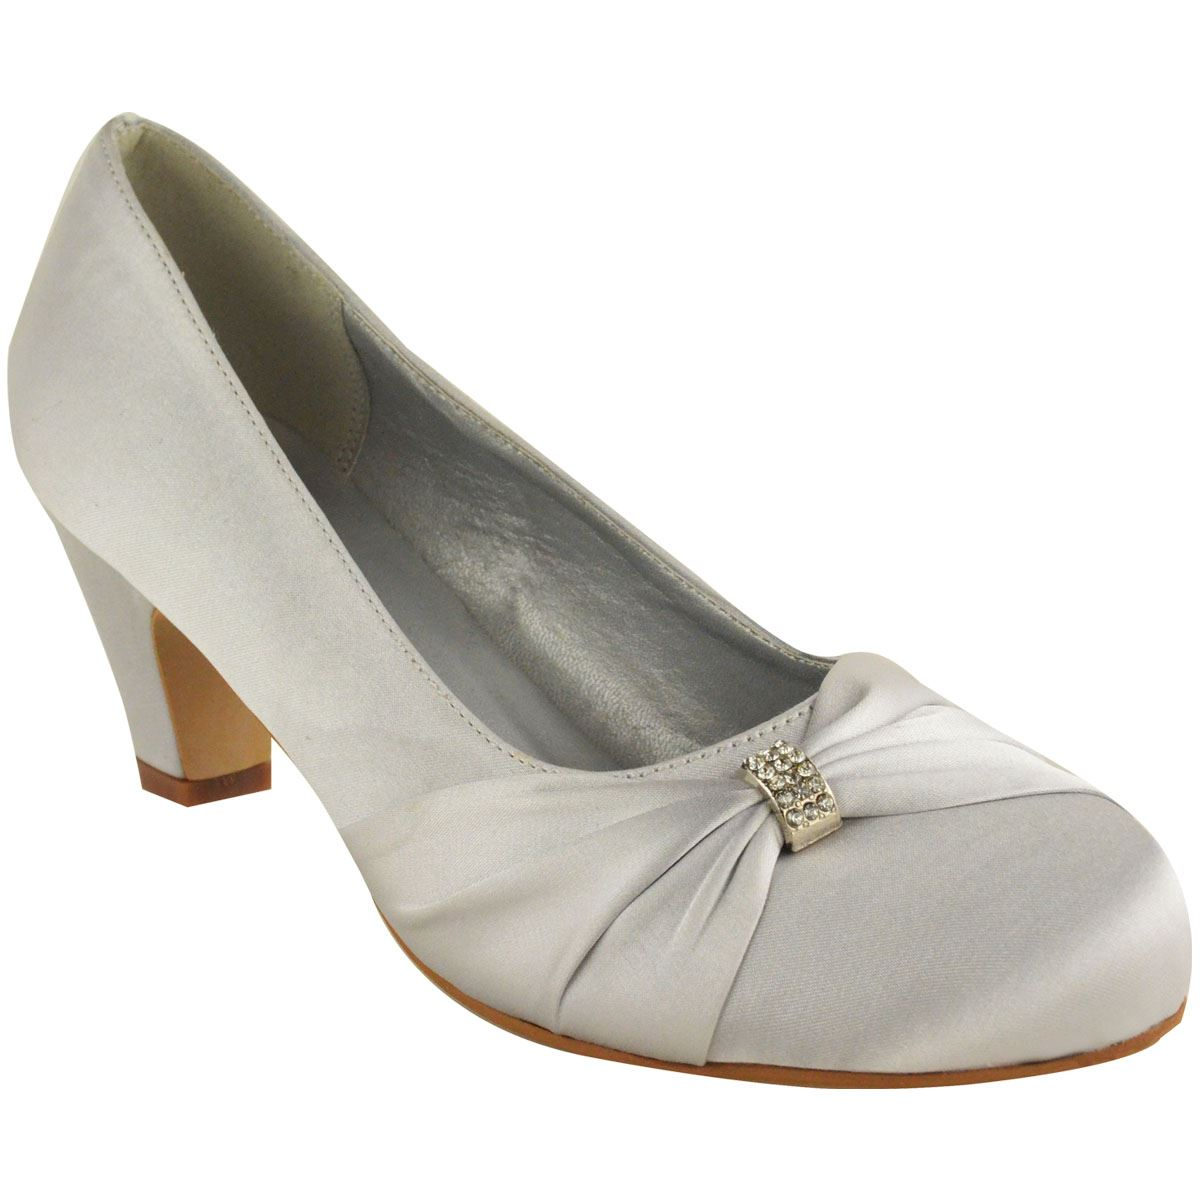 Womens Evening Shoes Low Heel Silver